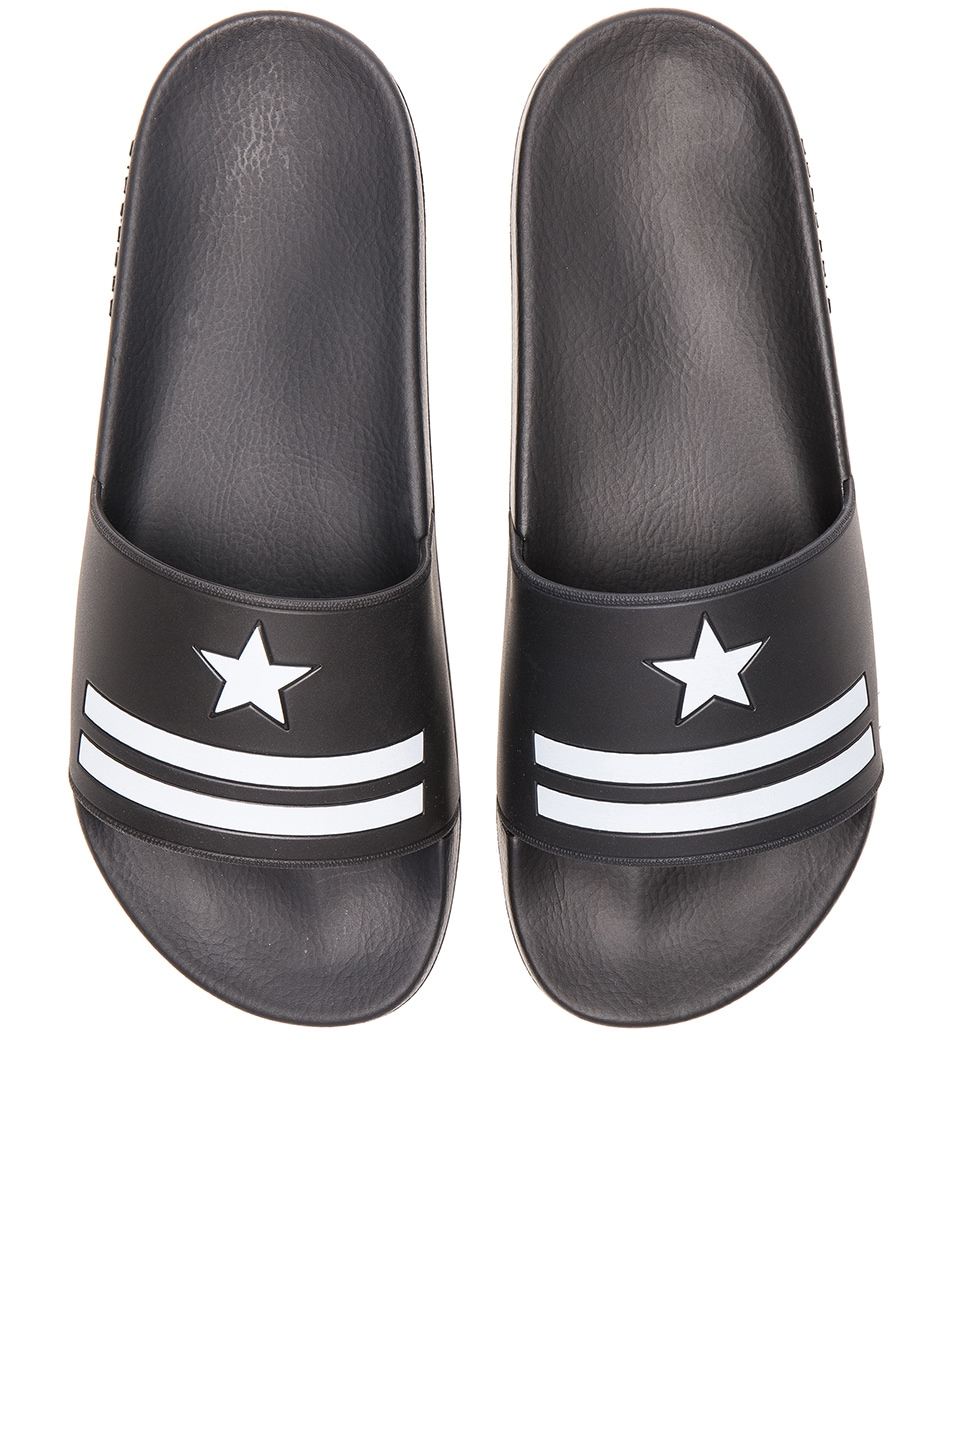 26ce94e0d1e7 Image 1 of Givenchy Polyurethane Slide Sandals in Black   White